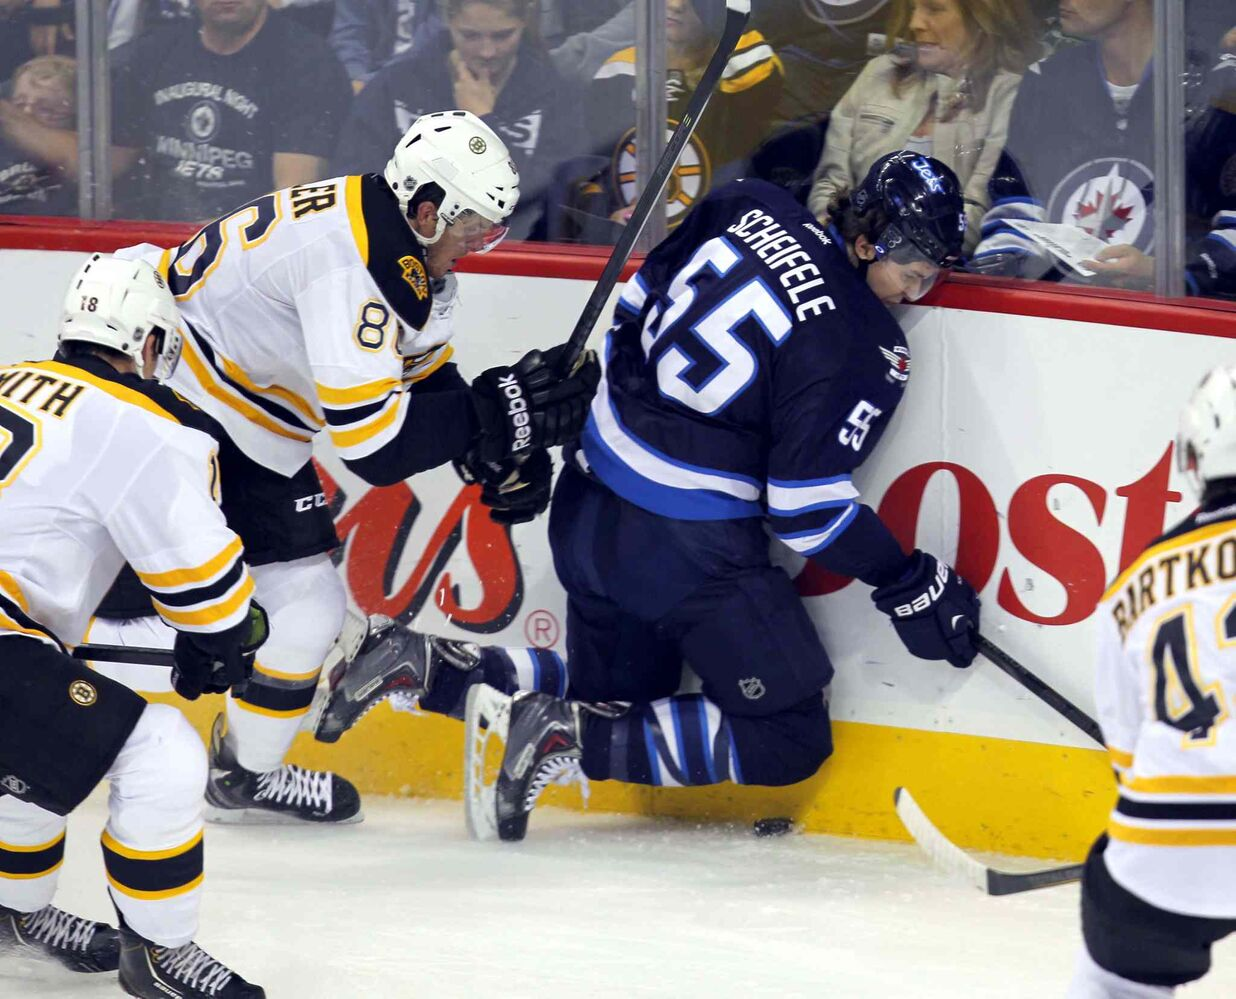 Mark Scheifele of the Winnipeg Jets goes hard into the boards in the first period.